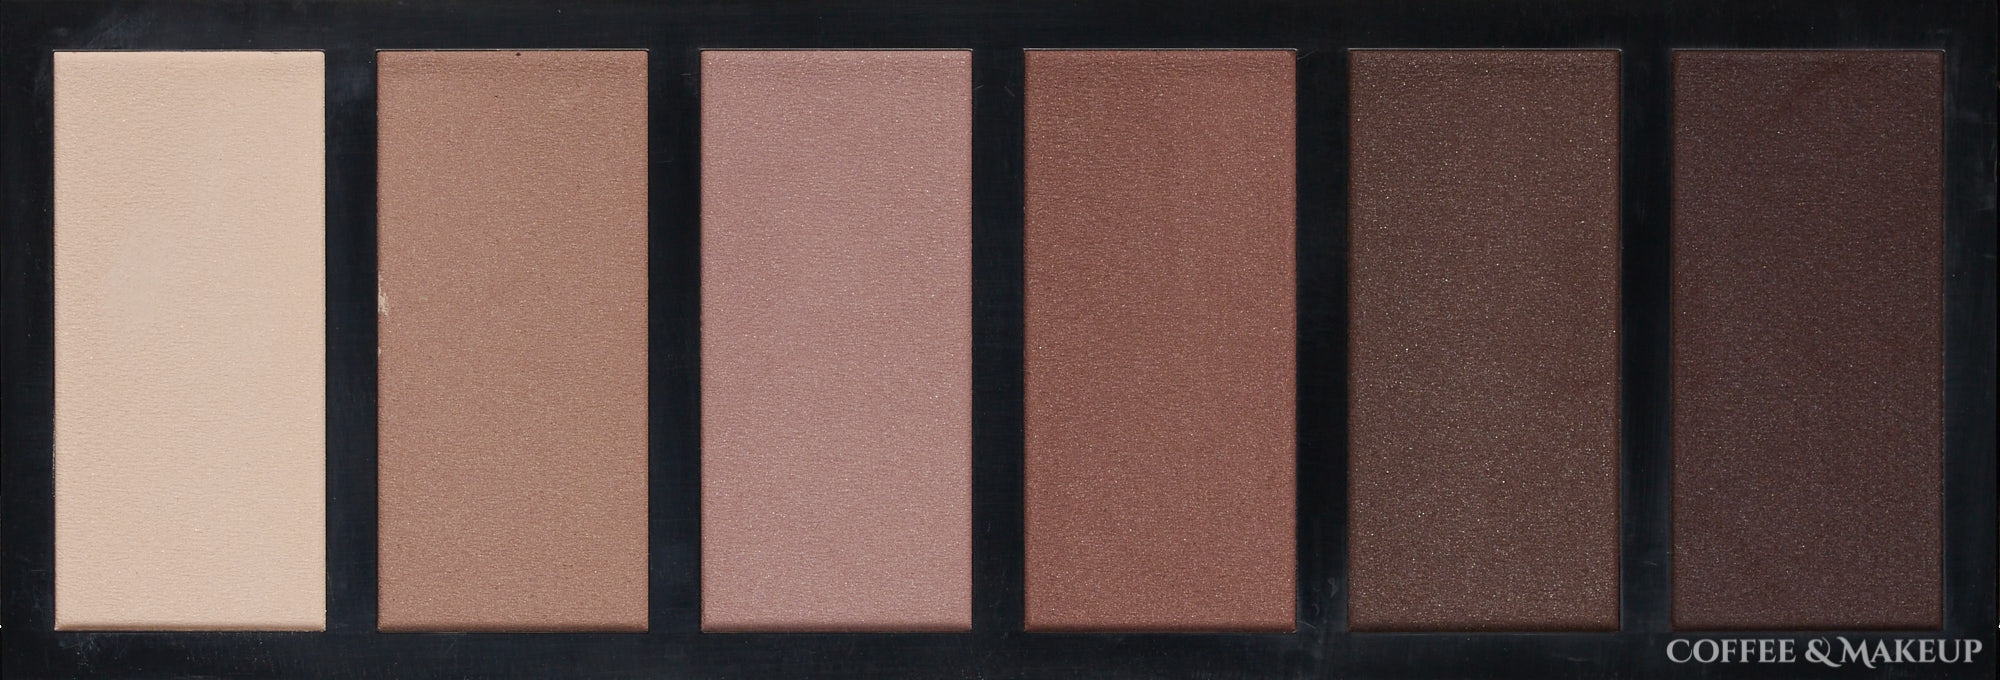 Milani Partner In Crime Most Wanted Eyeshadow Palette